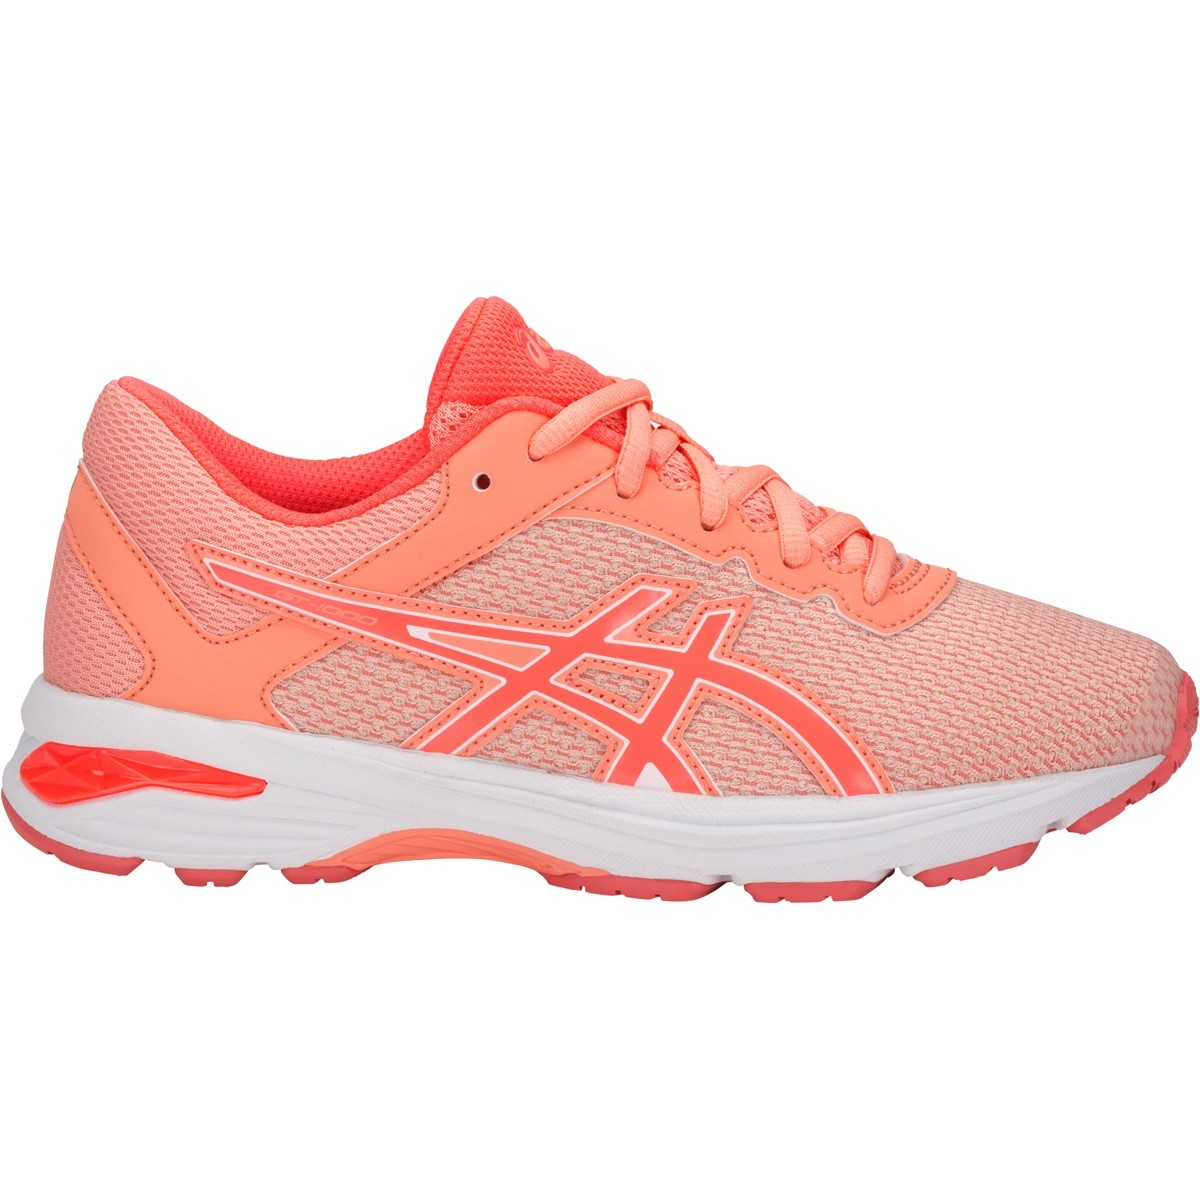 cff63302a4c9 Asics GT 1000 6 GS - Kids Girls Running Shoes - Apricot Ice Flash Coral